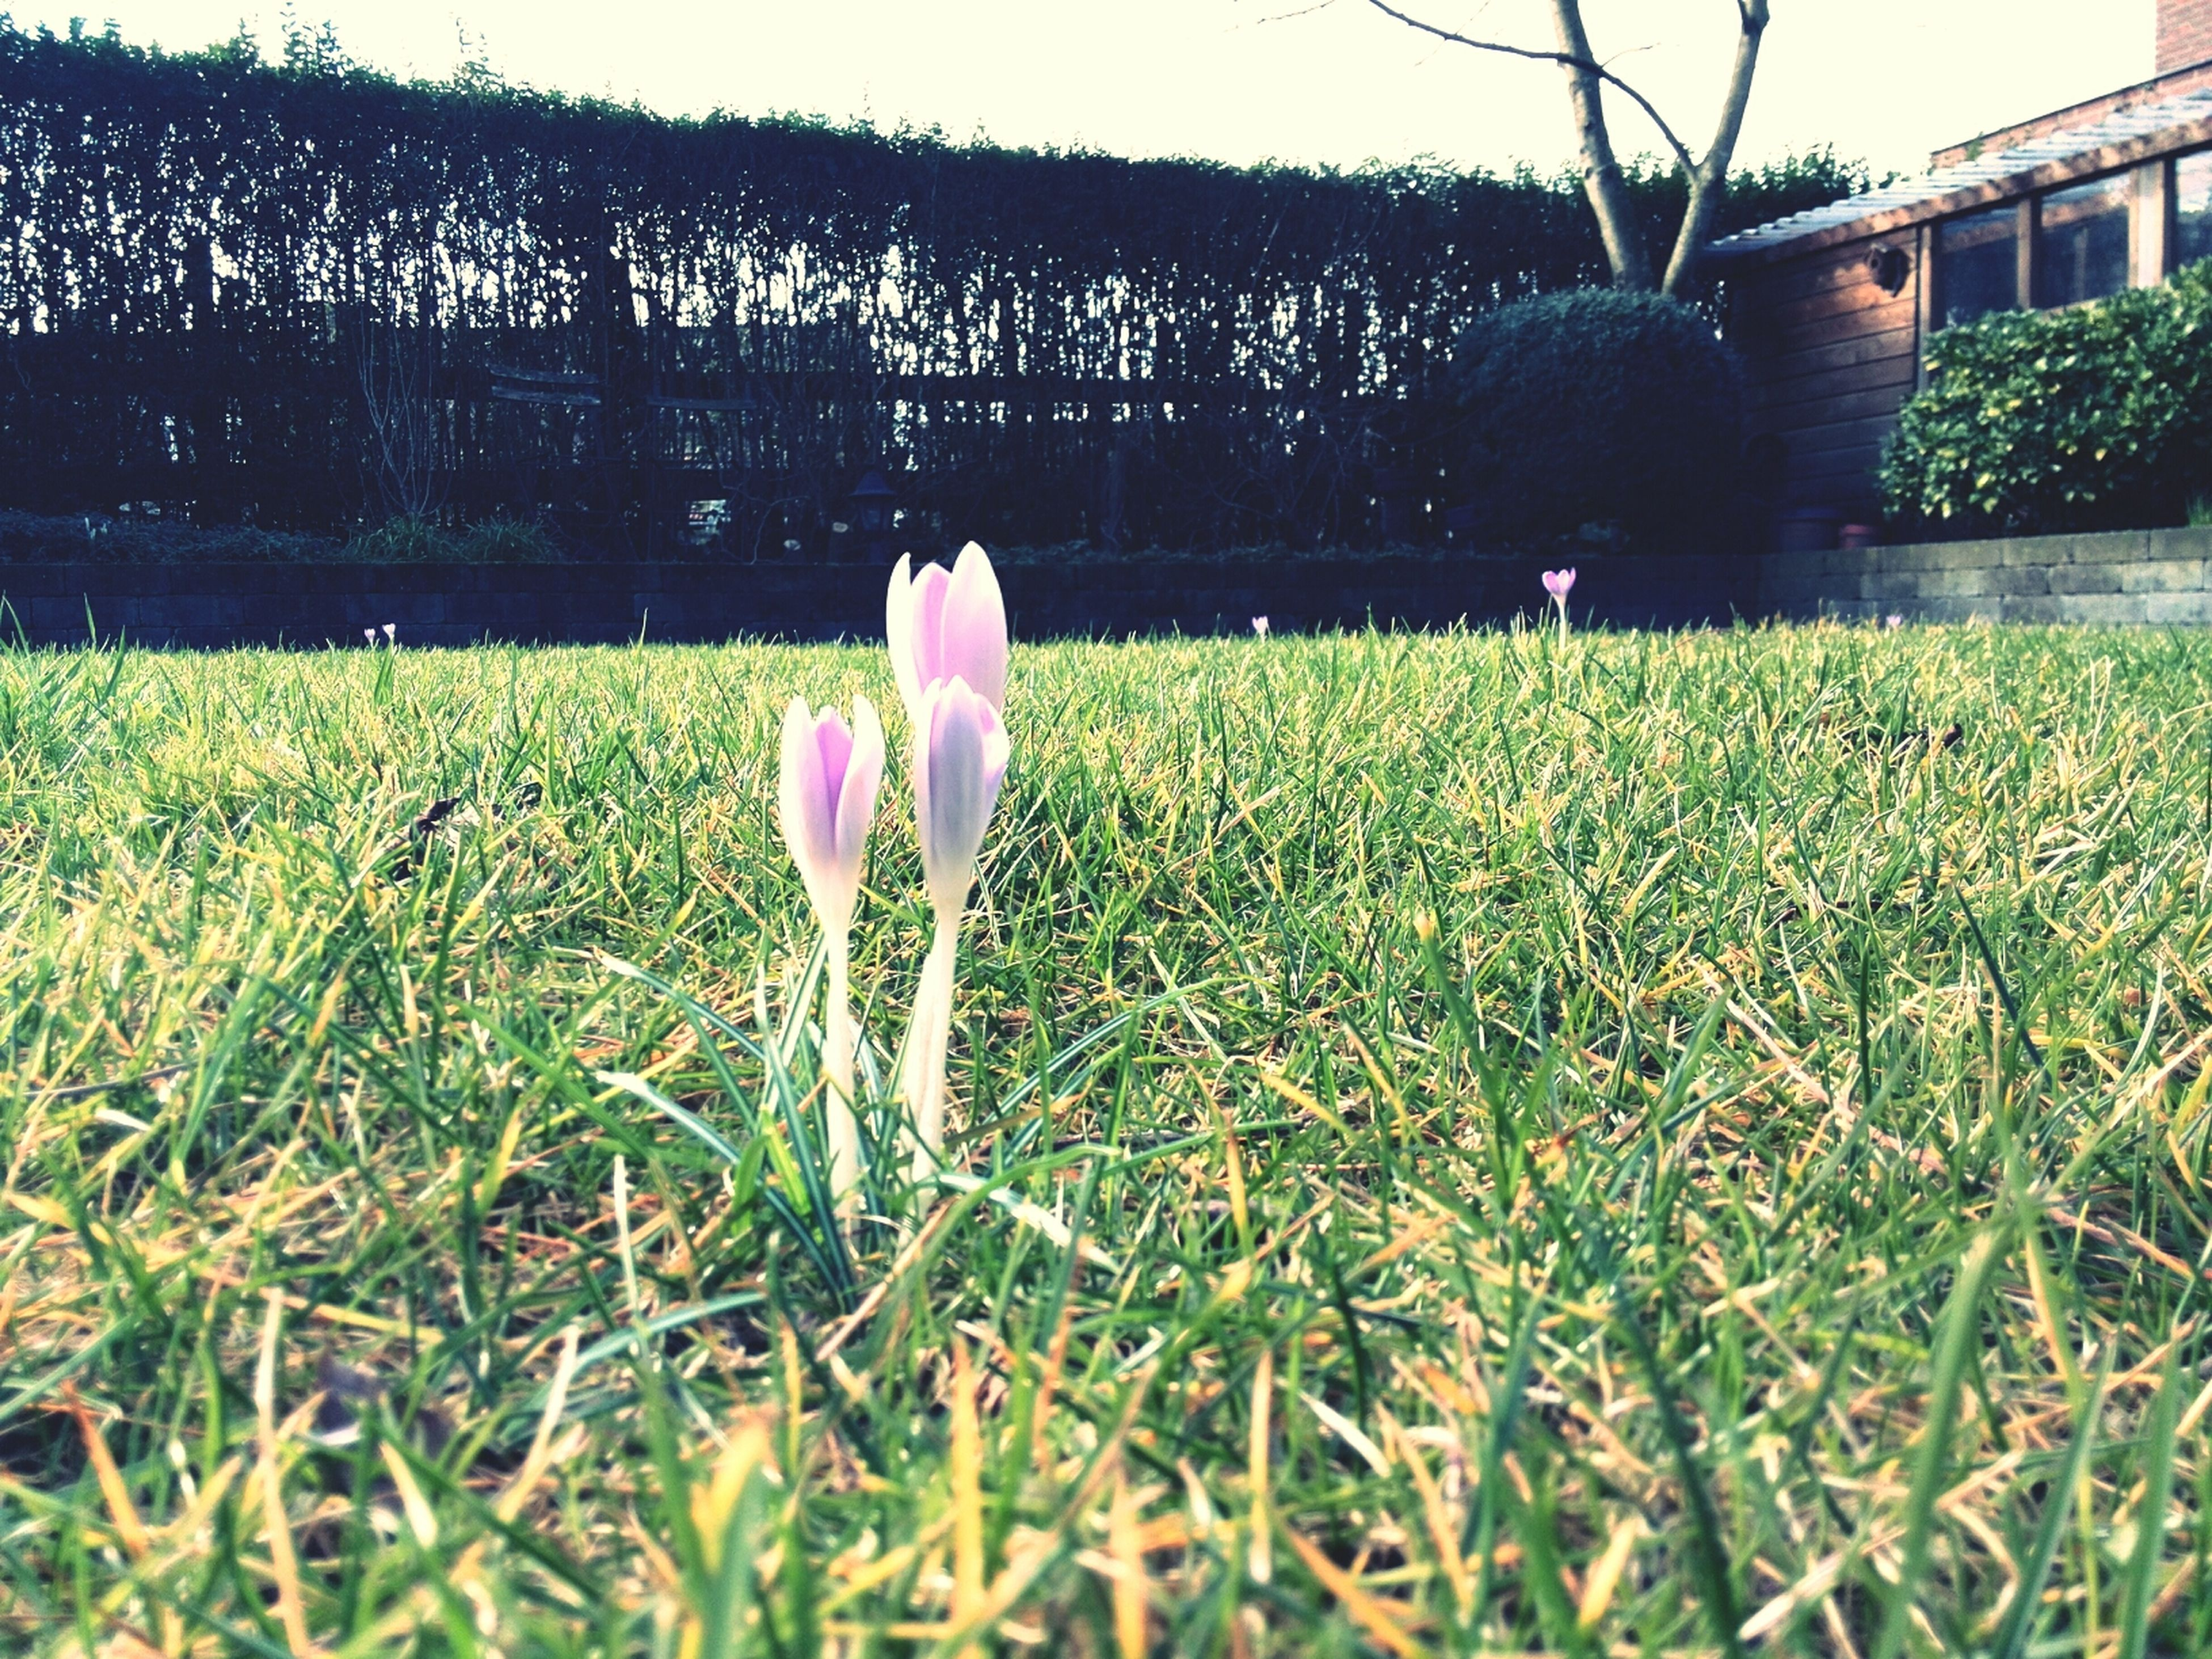 grass, field, flower, growth, grassy, rear view, plant, nature, freshness, green color, standing, fragility, beauty in nature, lawn, lifestyles, outdoors, day, leisure activity